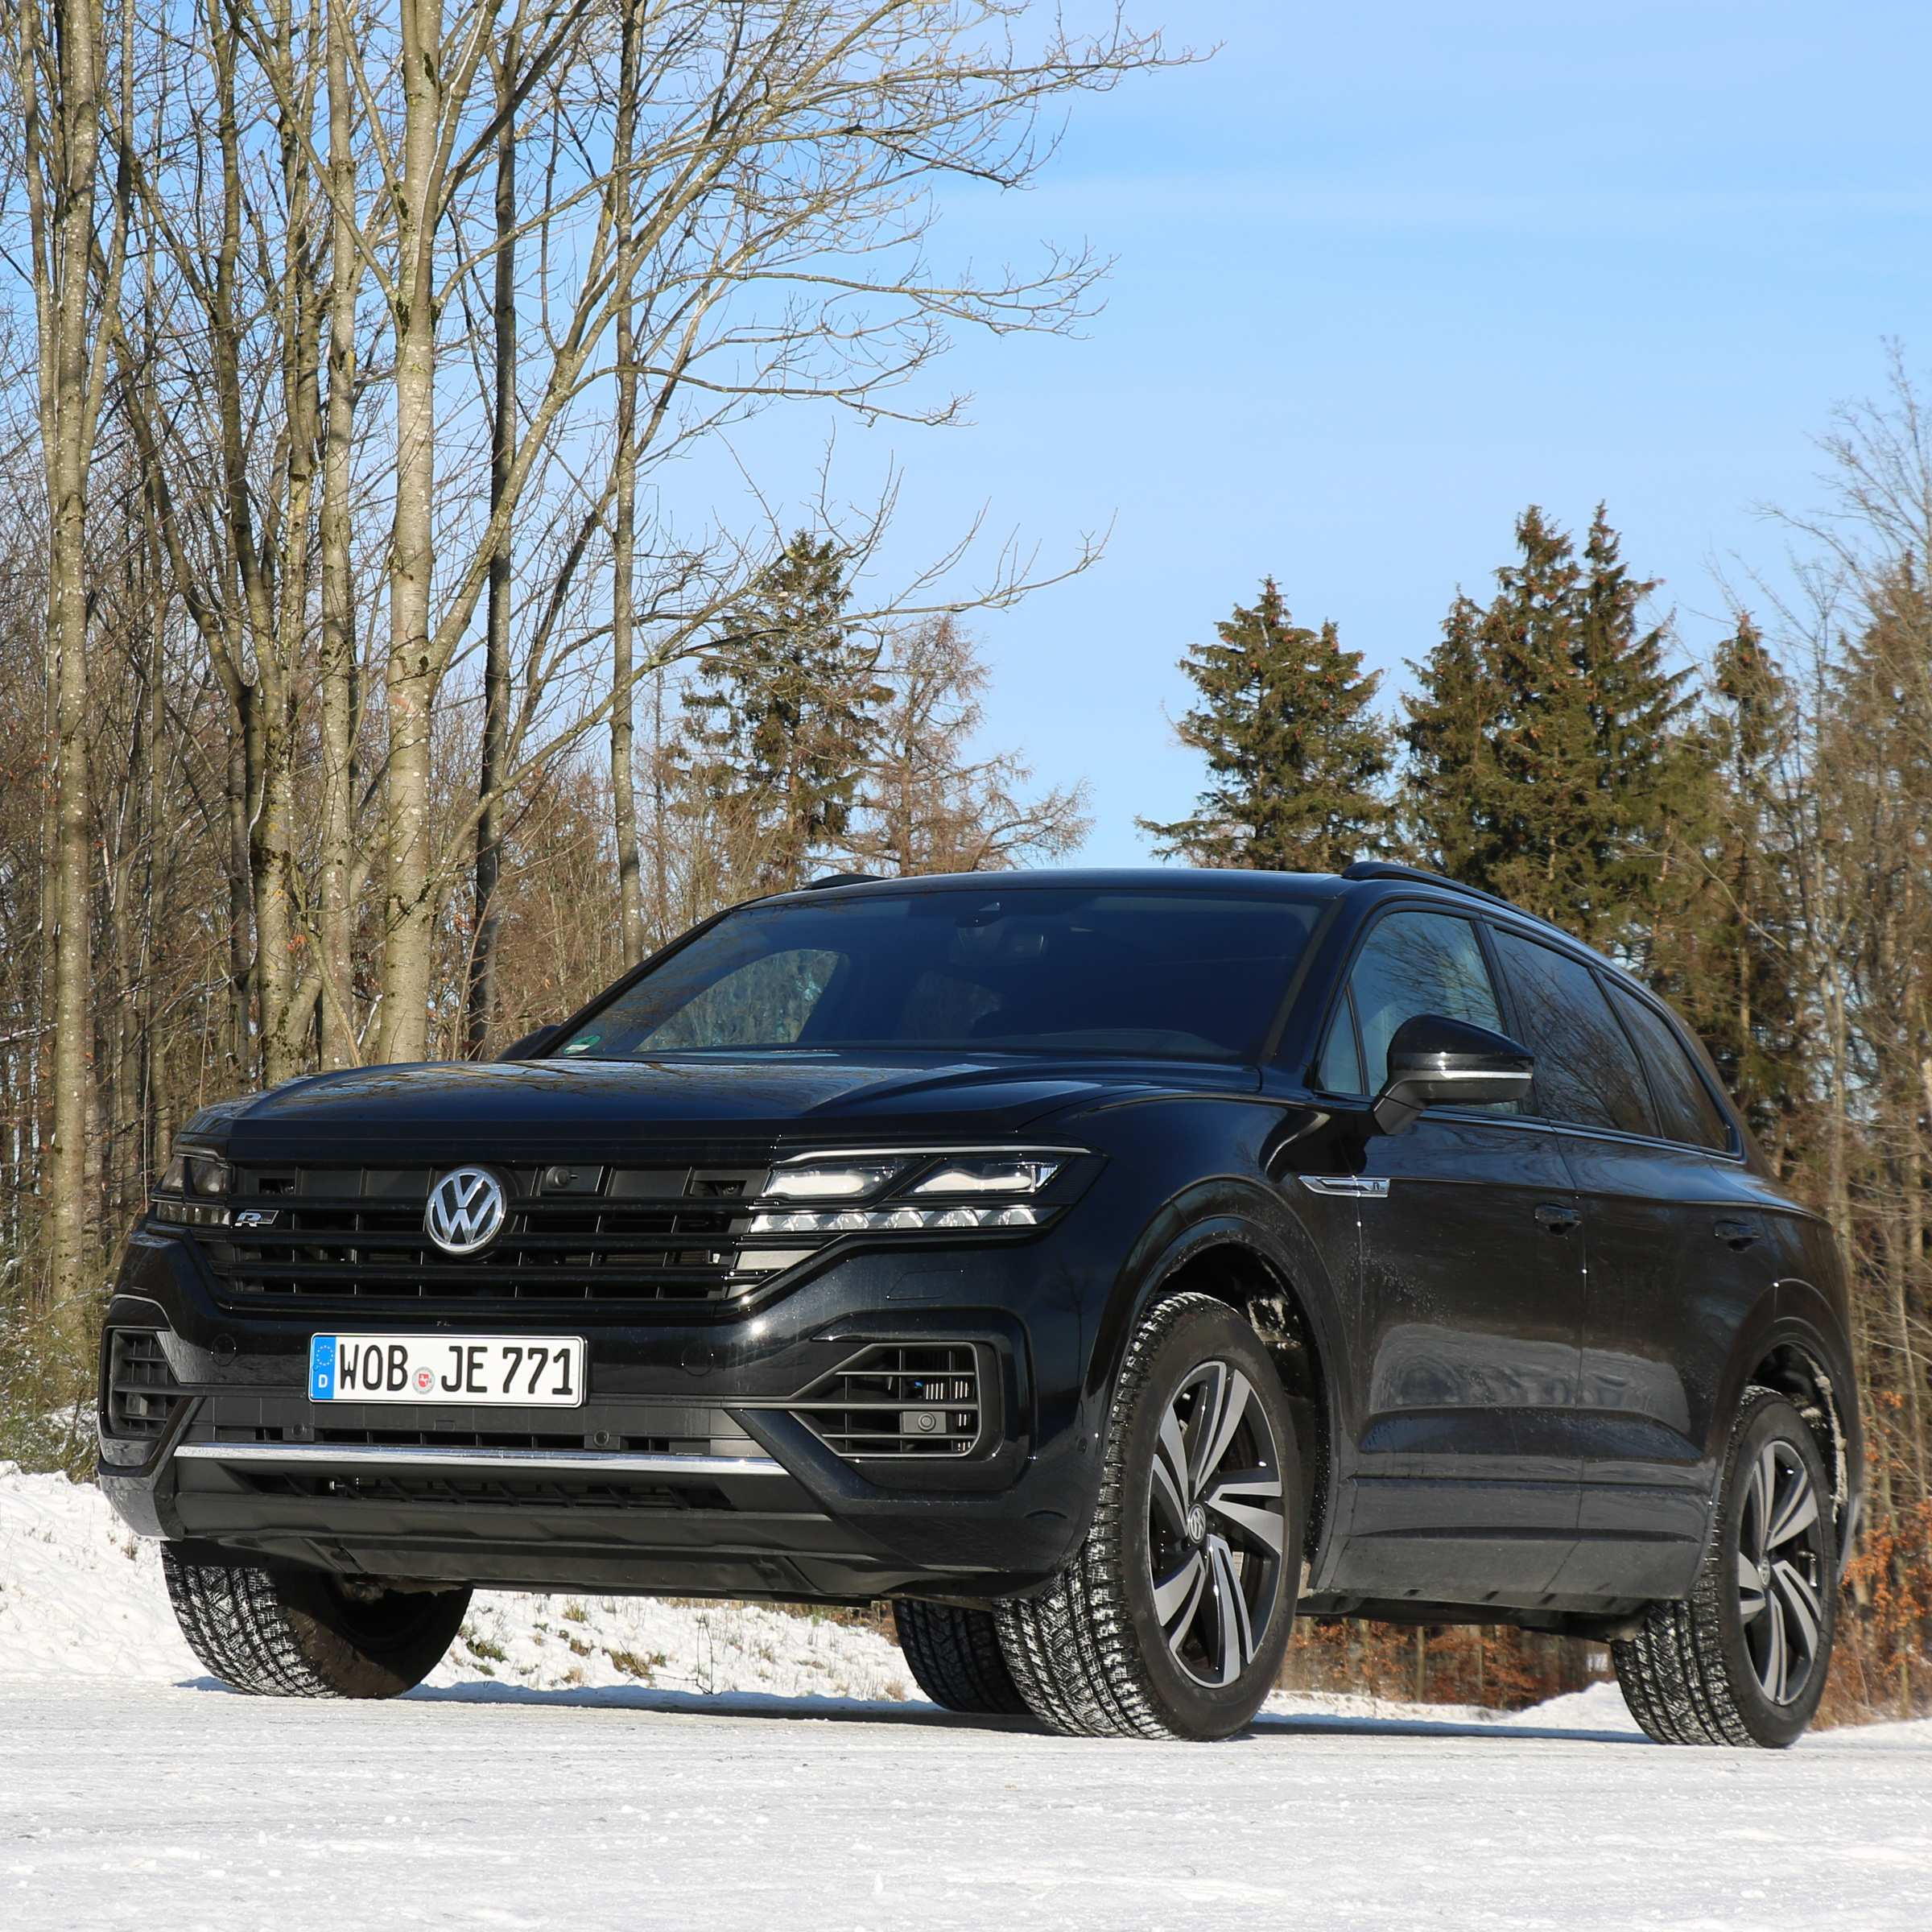 44 All New 2019 VW Touareg History